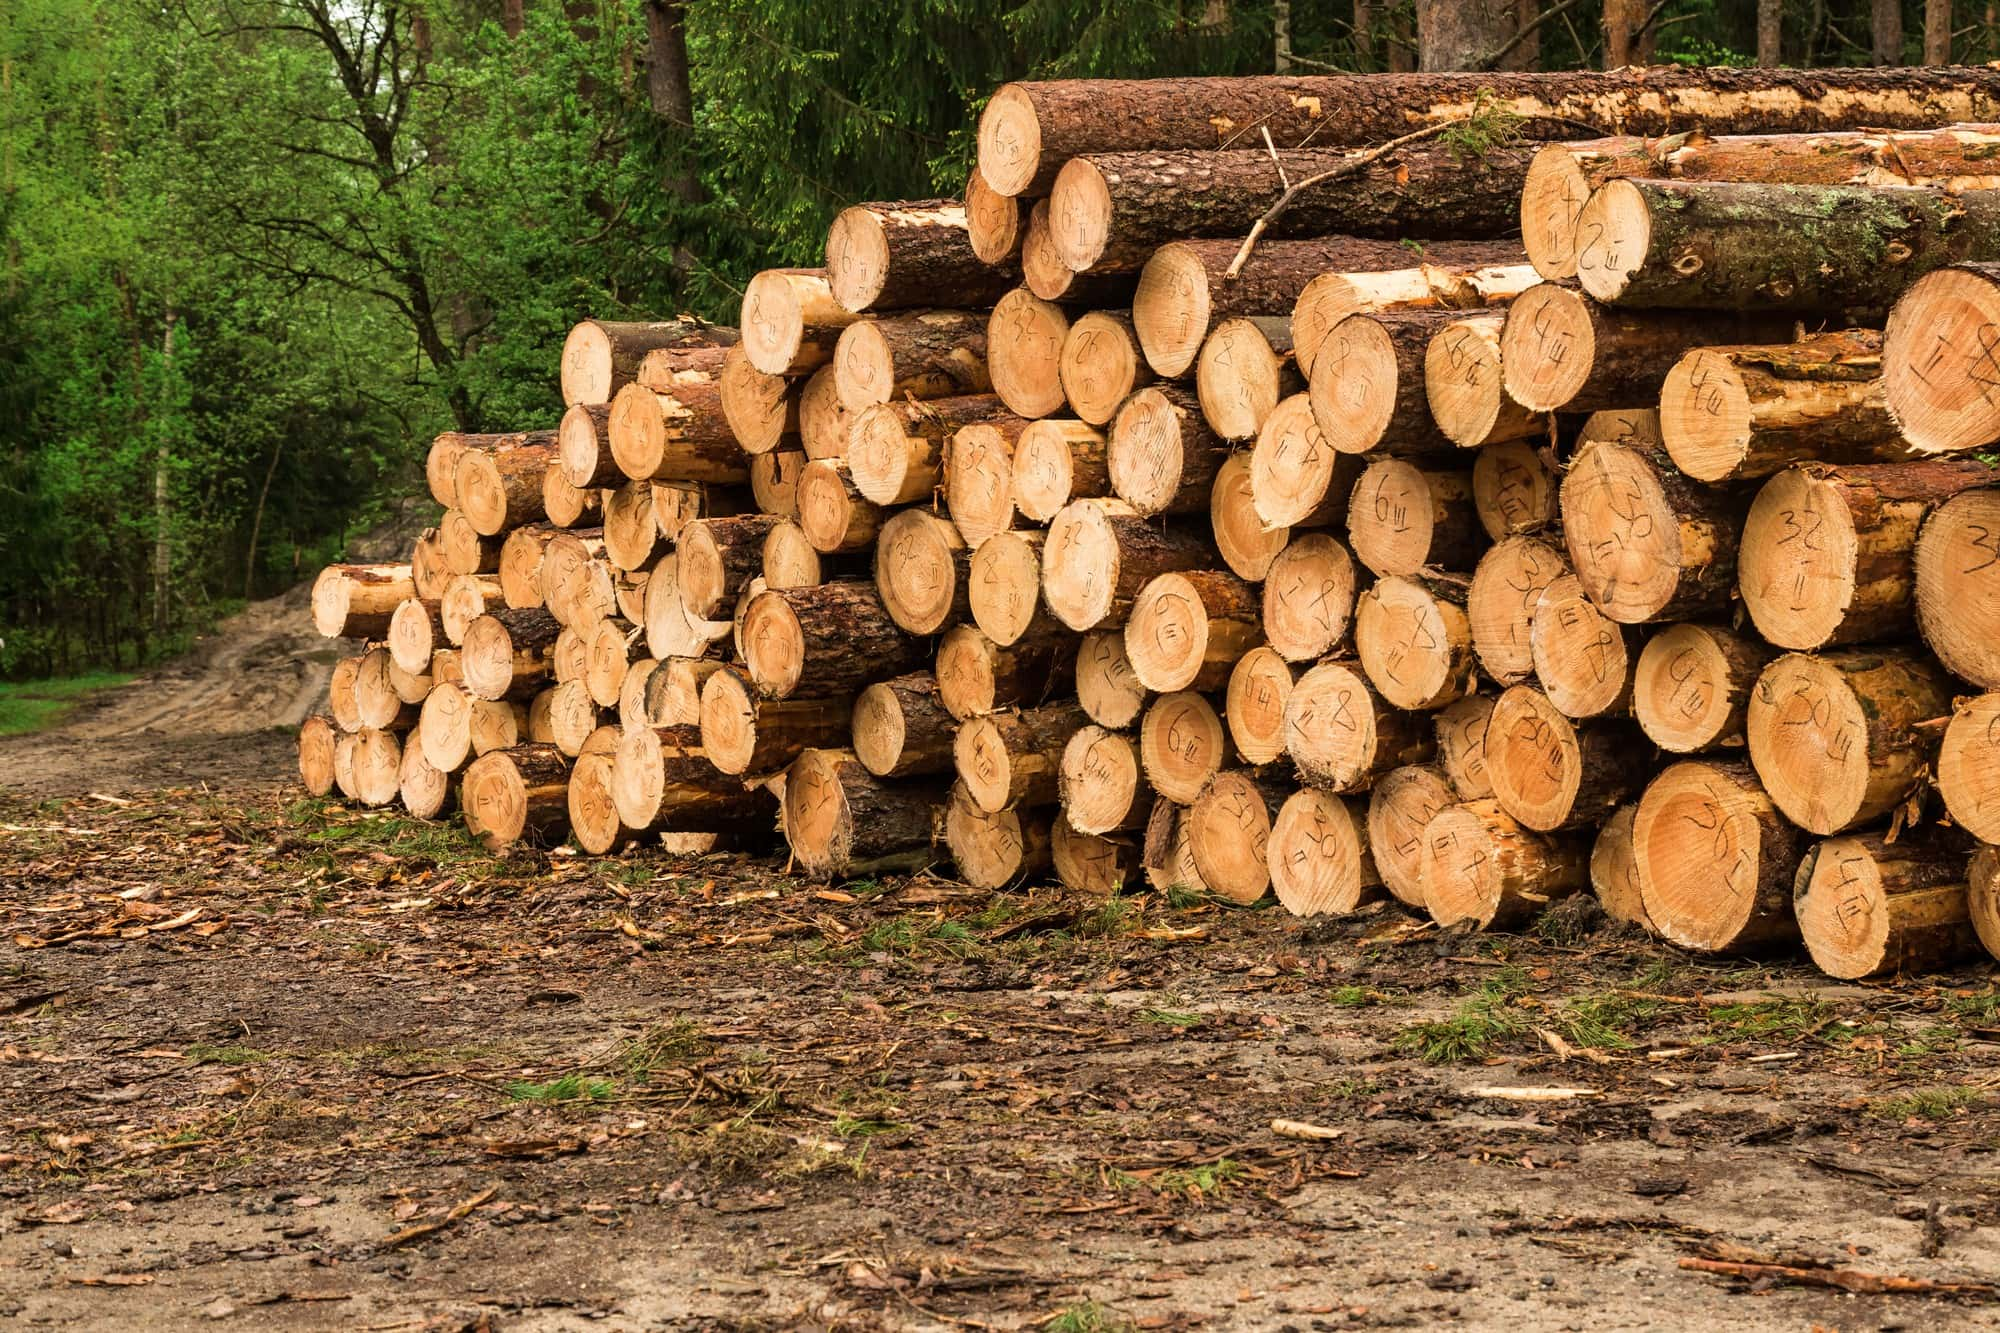 Woodyfuel chopped wood for sustainable cities and communities